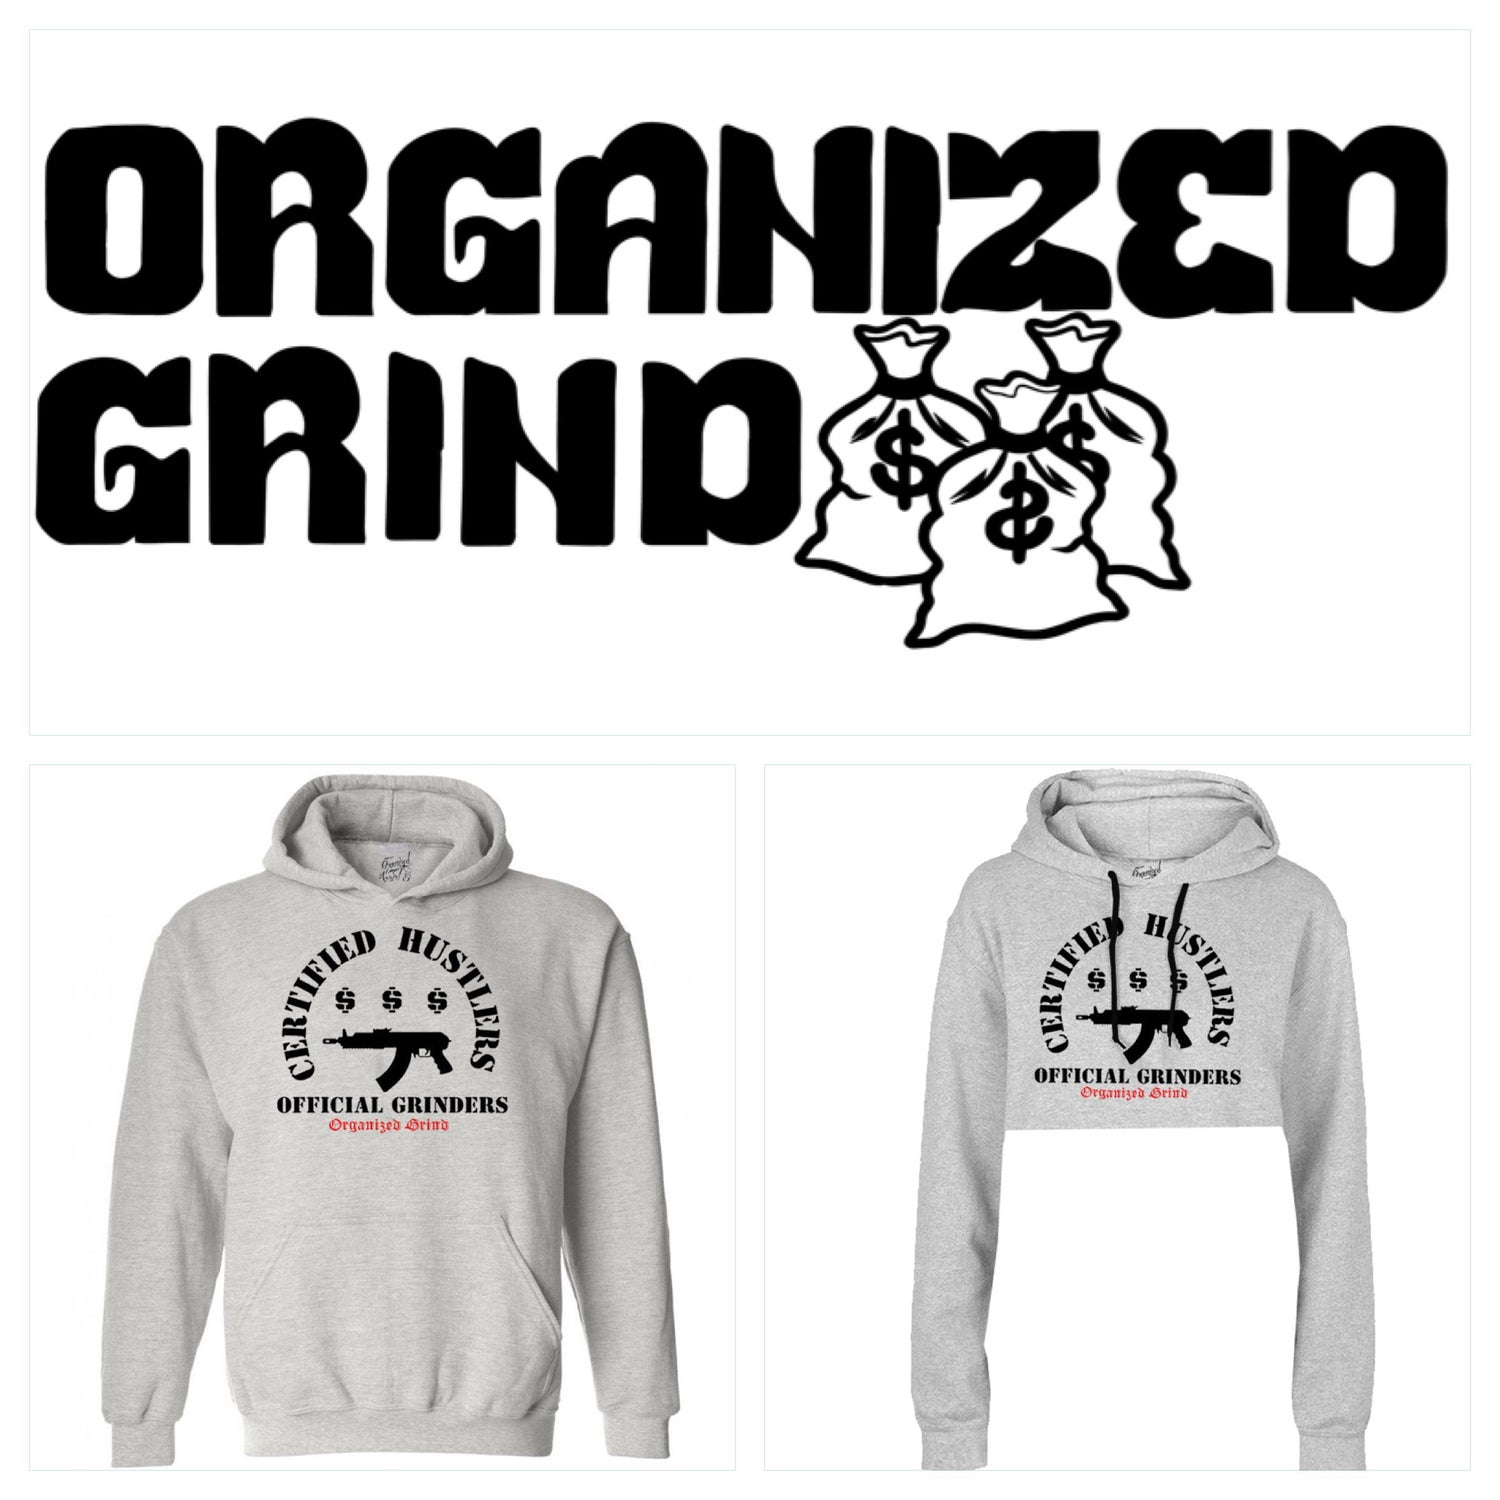 Image of New - Certified Hustlers ~ Official Grinders Hoodies